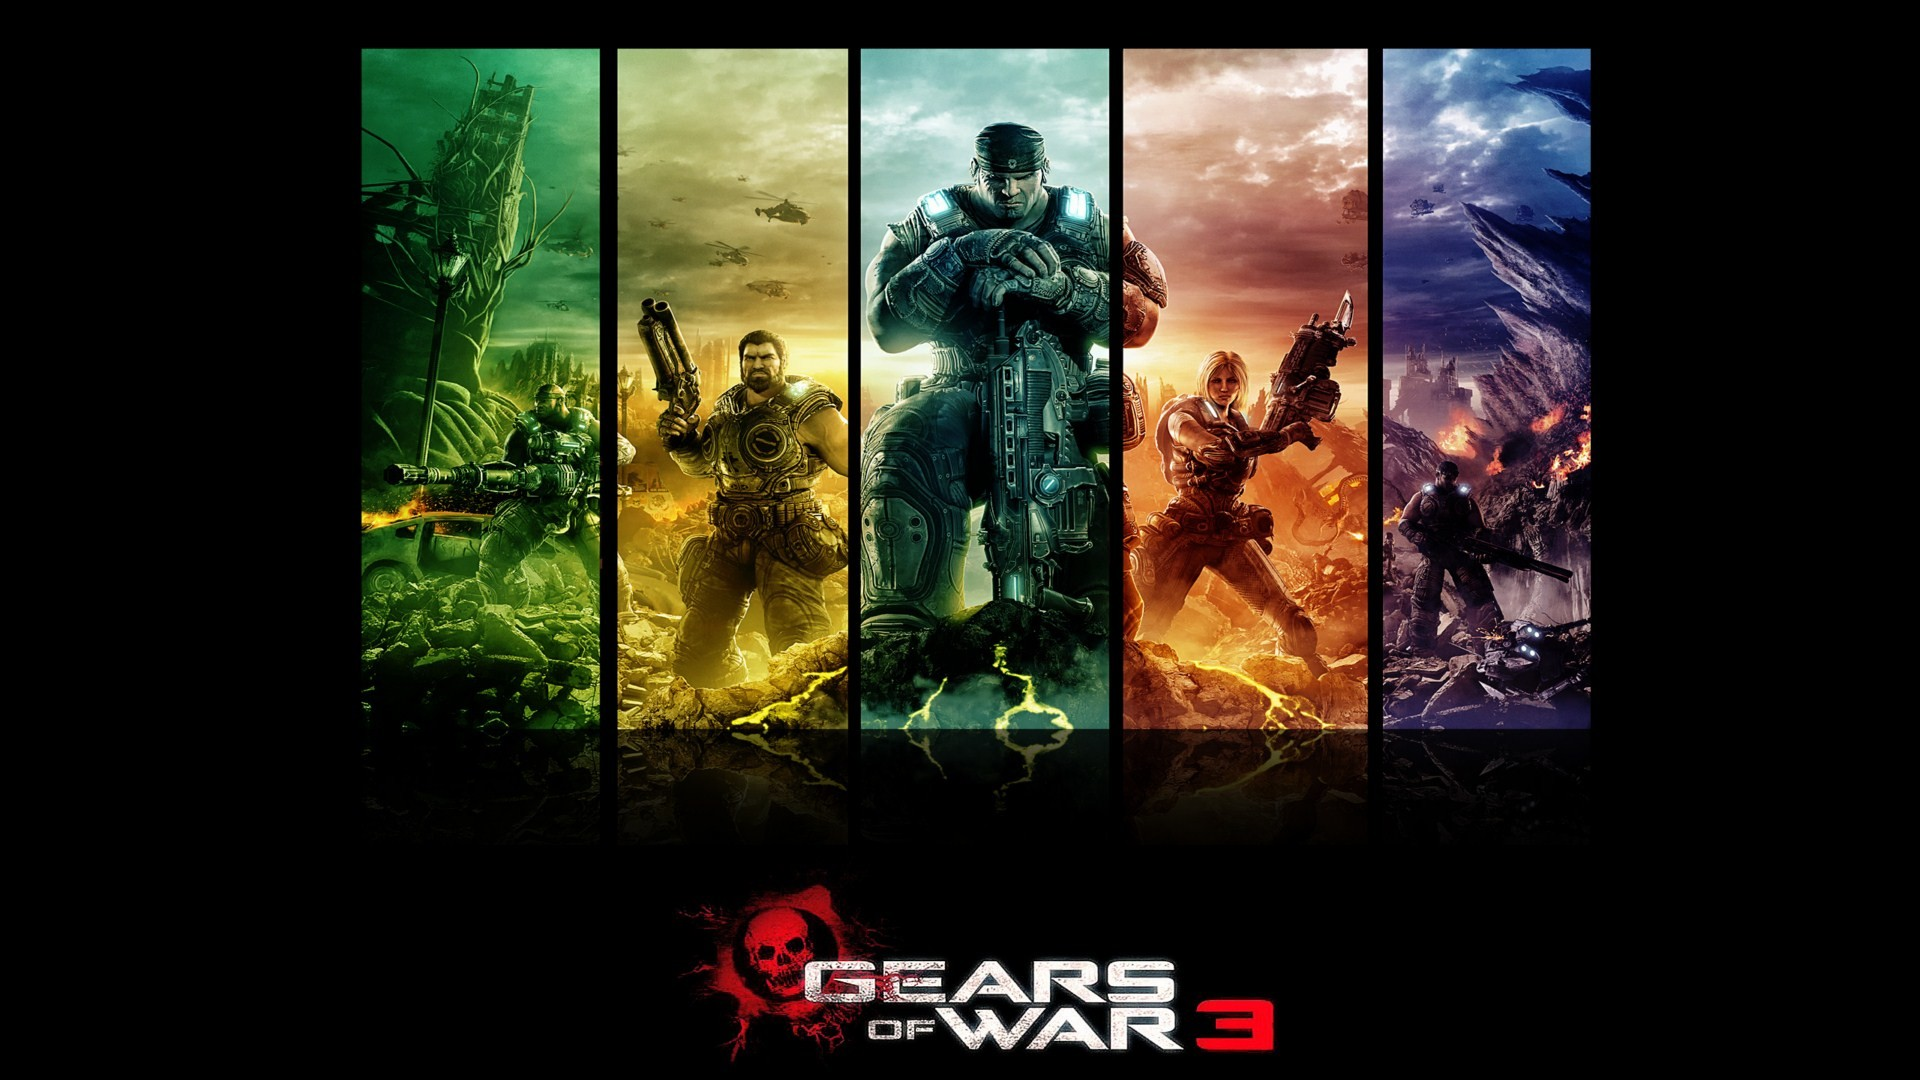 1920x1080 Gears Of War 3 HD Wallpaper | Background Image |  | ID:280281 -  Wallpaper Abyss